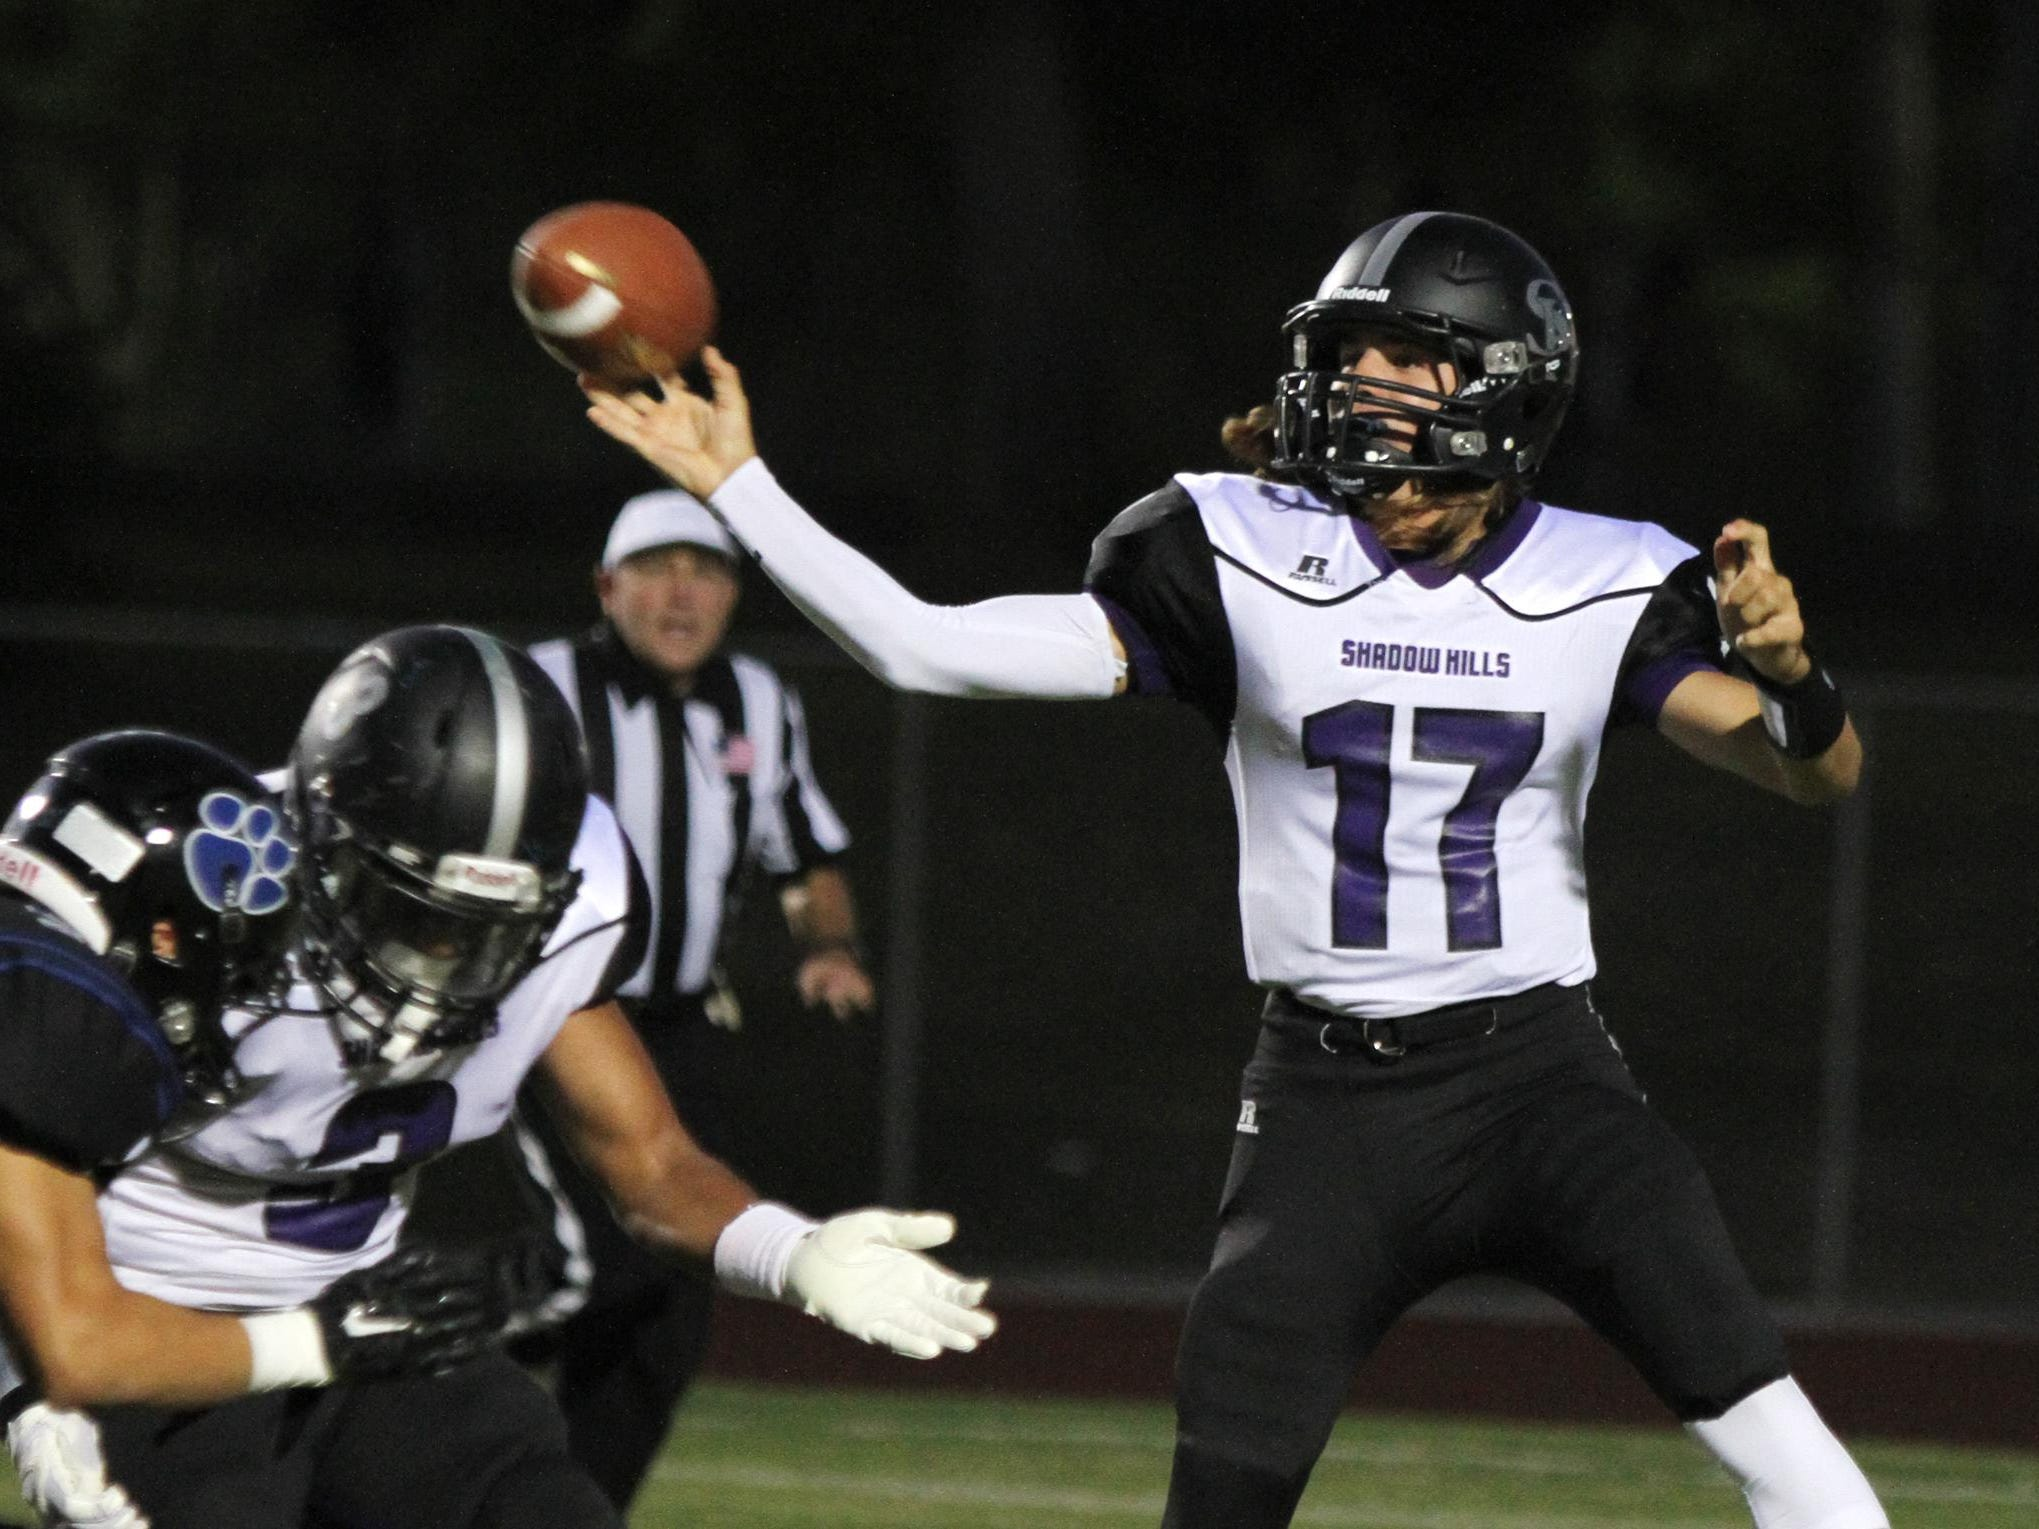 Shadow Hills quarterback Jason Lang throws the ball during the first half against Cathedral City High School on Friday.